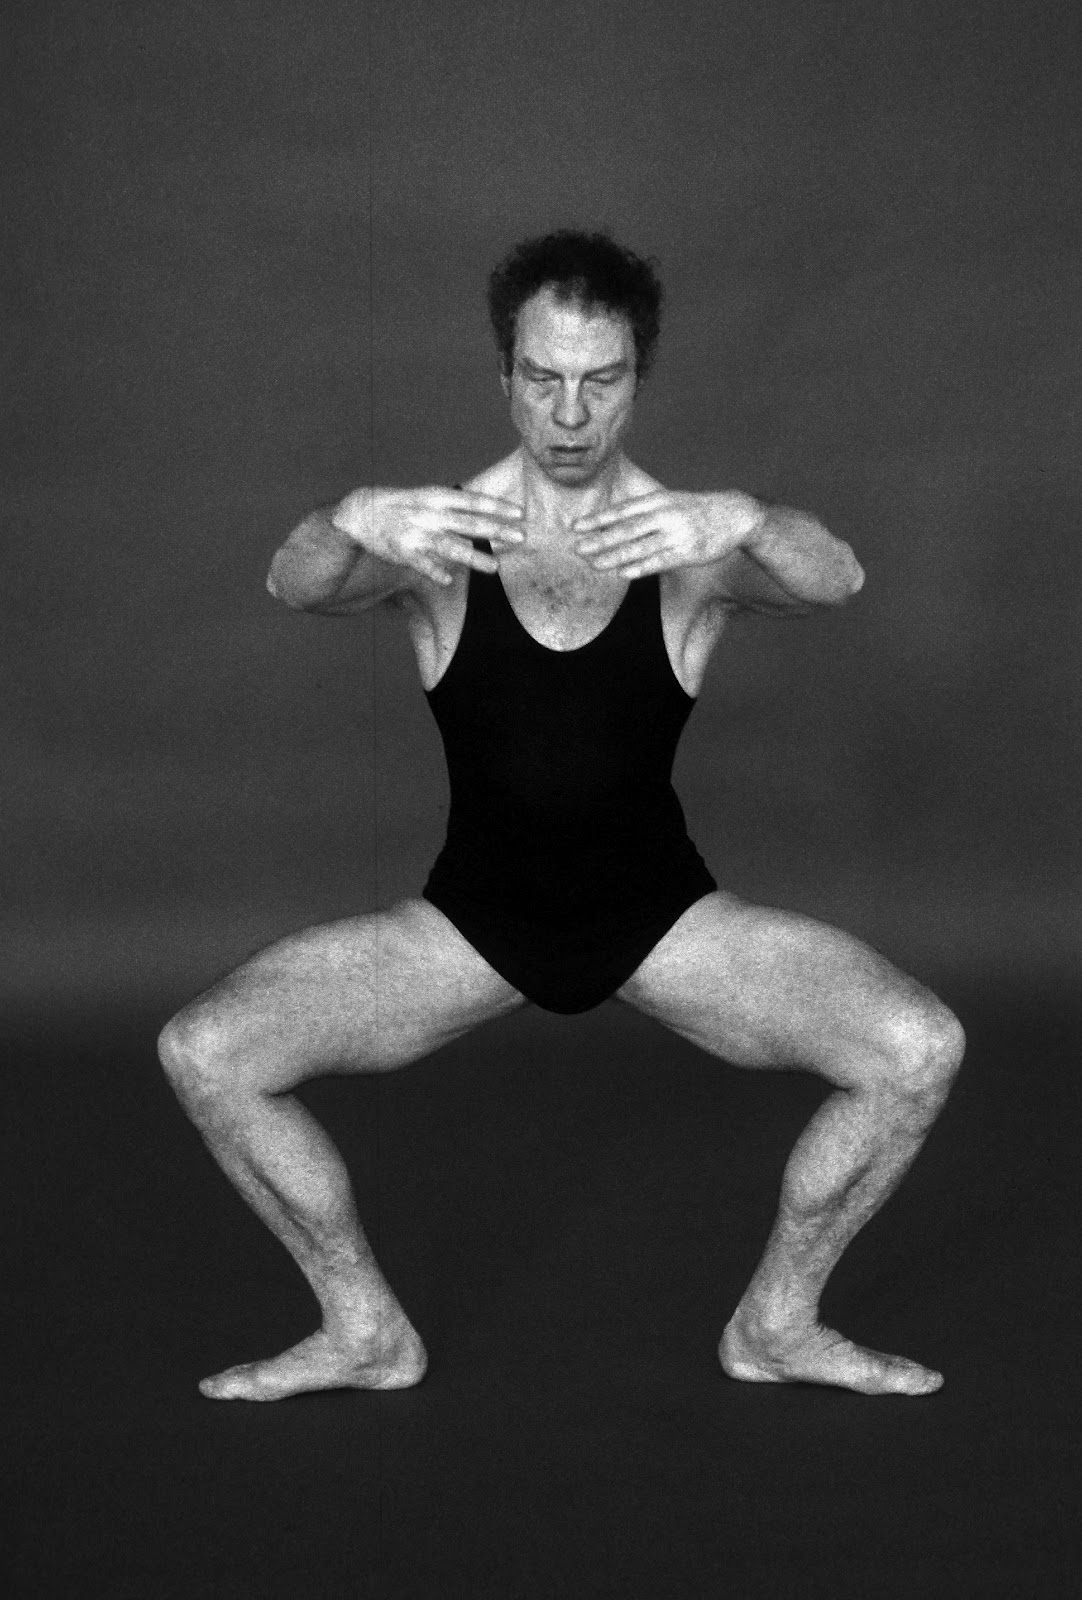 the life of merce cunningham Selected writings by and about merce cunningham books alloway, lawrence robert rauschenberg washington: national collection of fine arts, smithsonian institution, 1976.